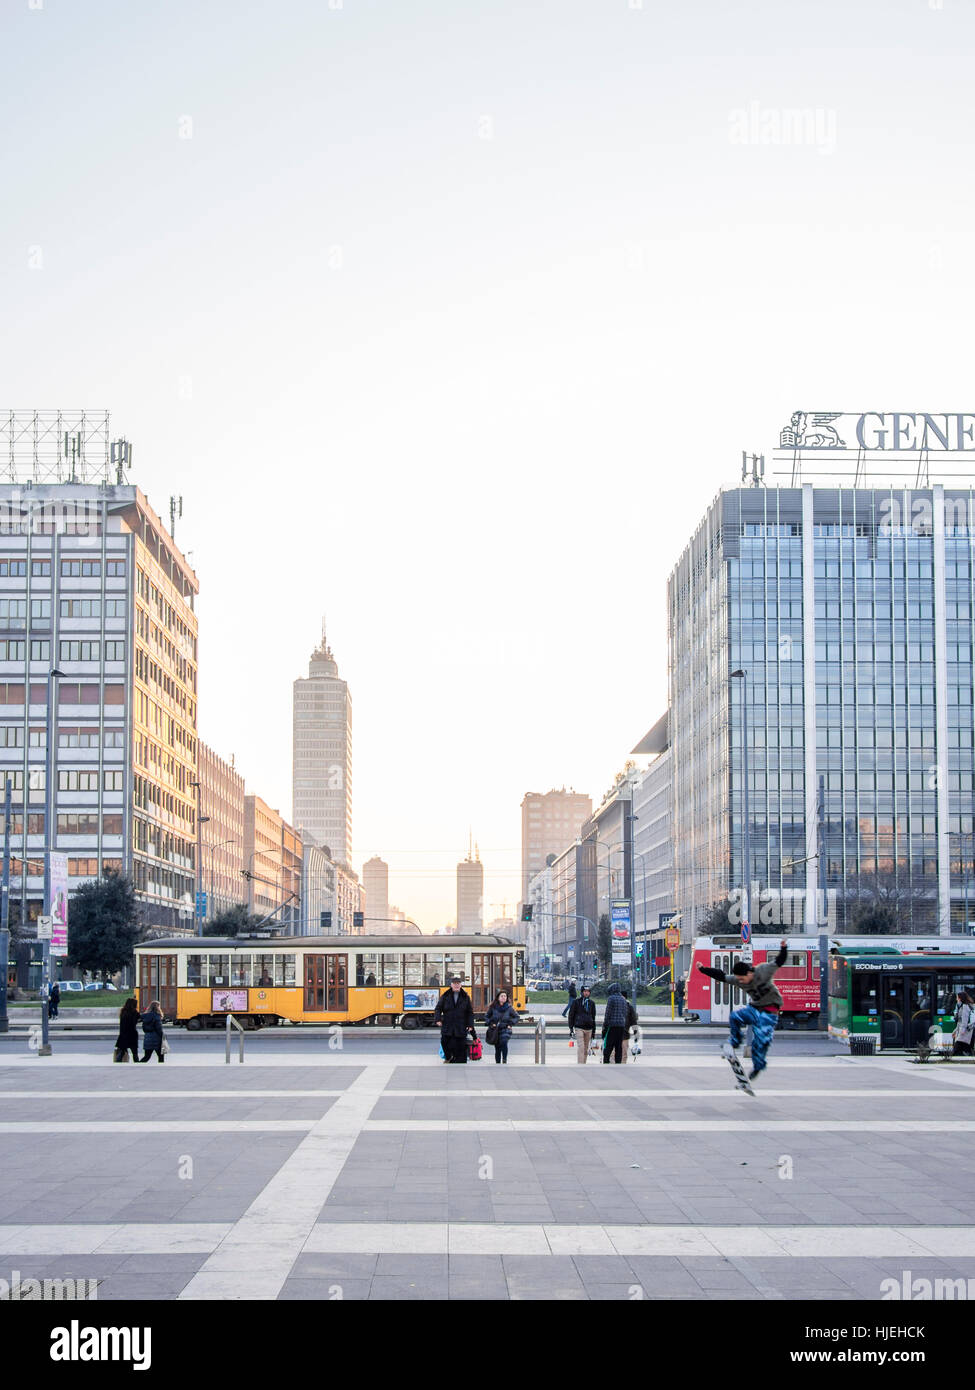 Milano Centrale Train Station at dusk. - Stock Image